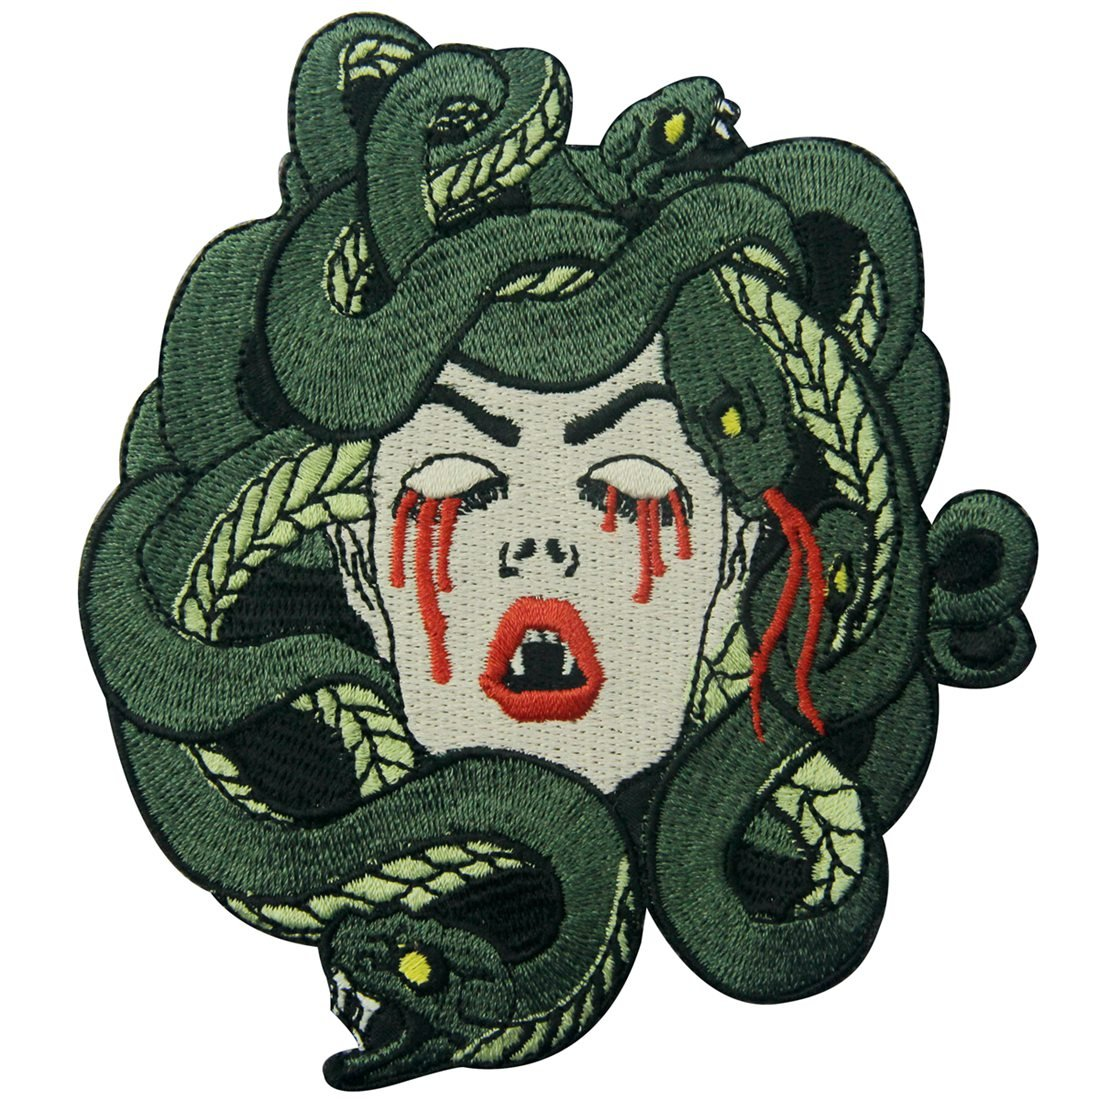 ZEGINs The Bleeding Medusa Embroidered Badge Iron On Sew On Patch 4337020628